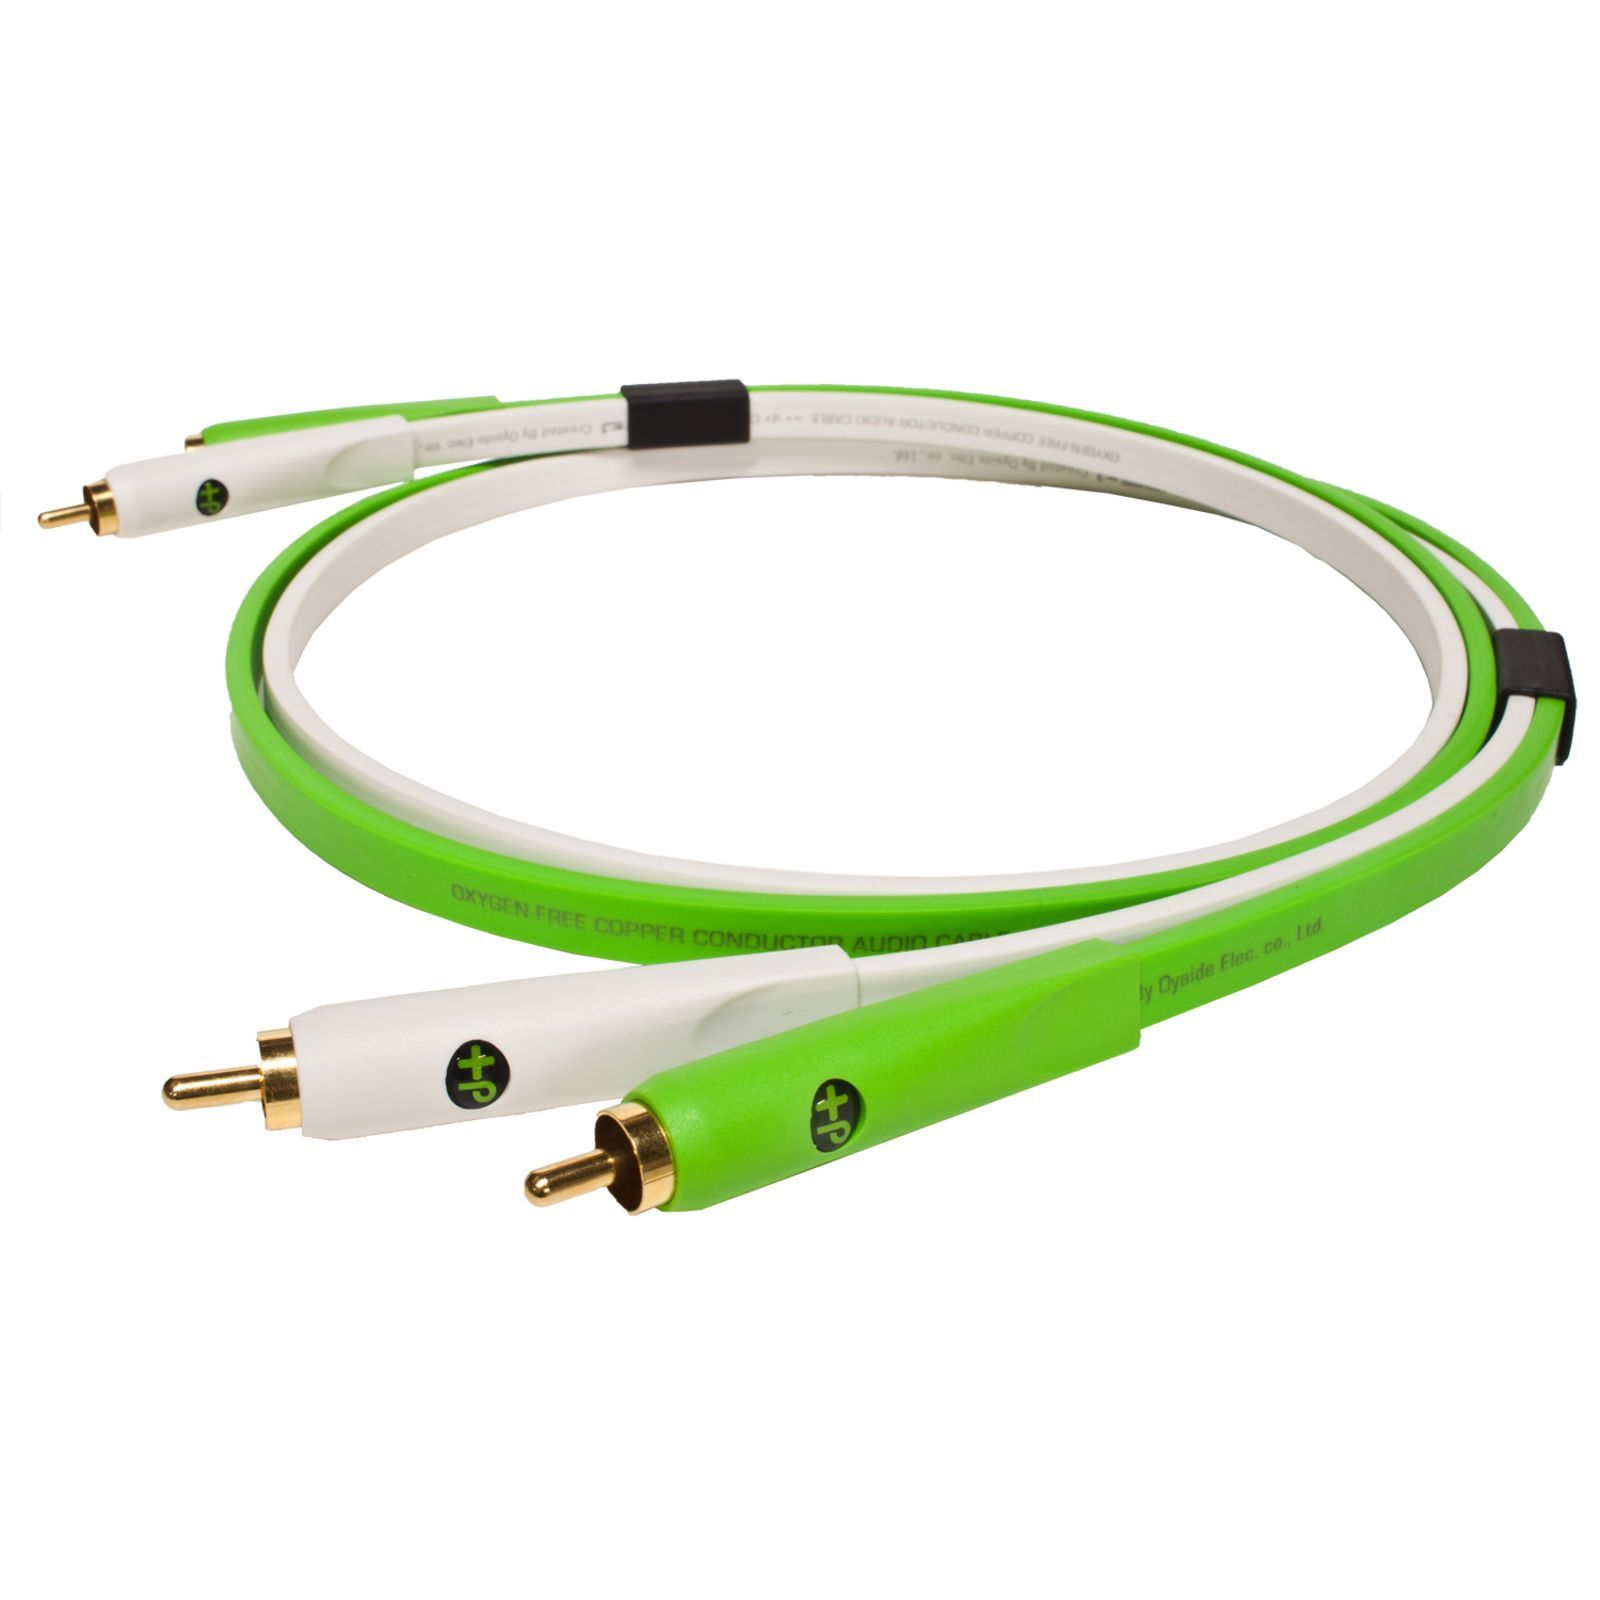 NEO by Oyaide d+ Stereo Cinch kabel, Class B 3,0m lengte Productafbeelding